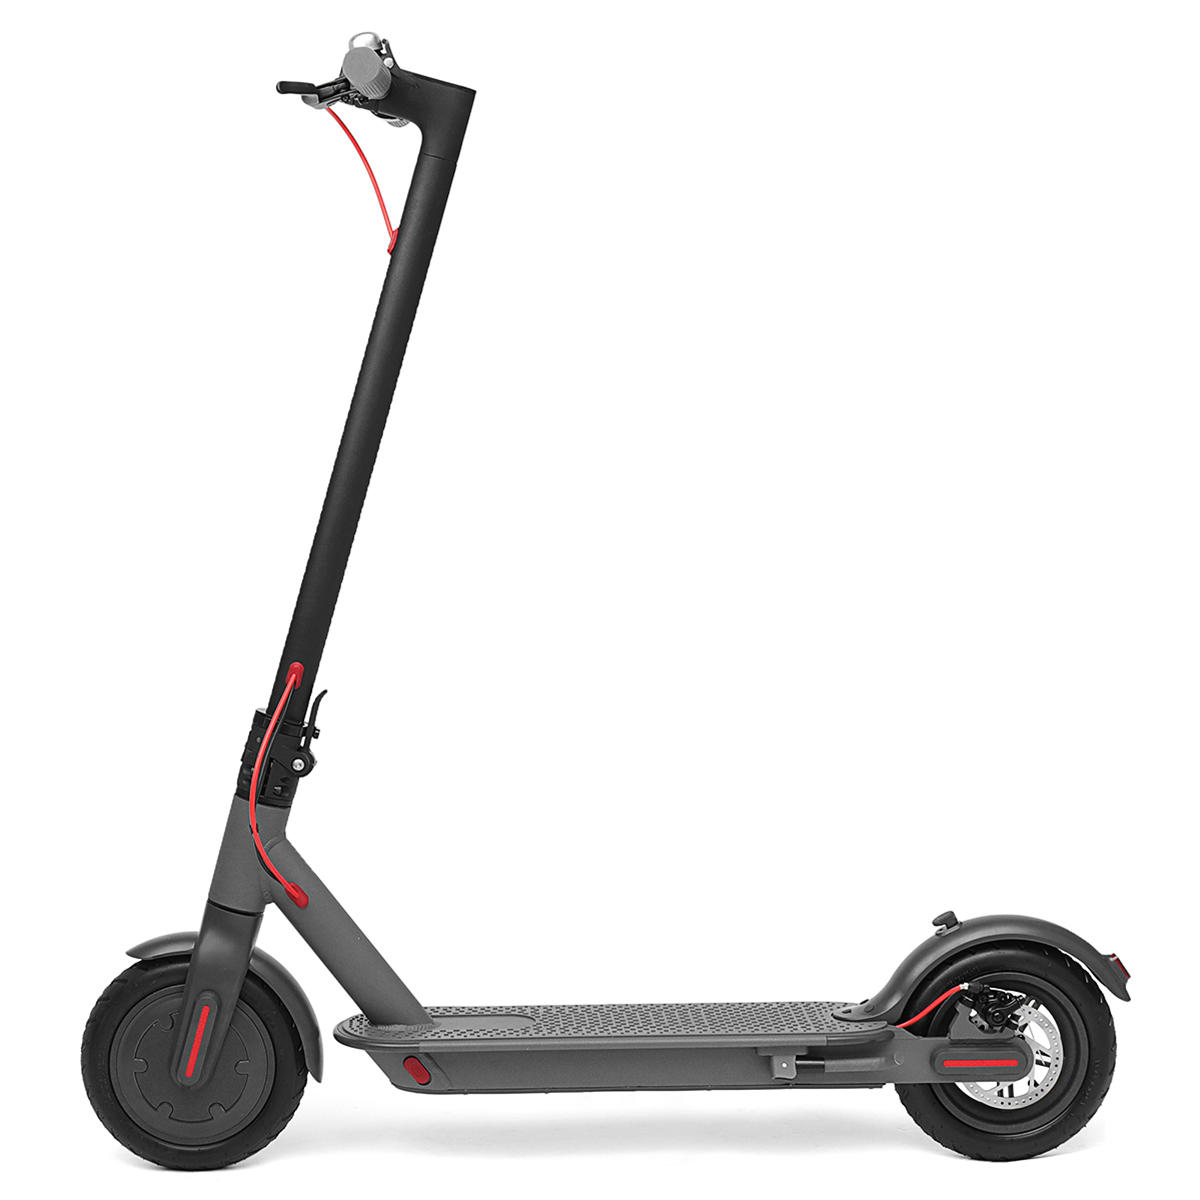 ALFAS 4.0Ah IP54 Waterproof Ultralight 30km Long Life Electric Scooter 28km/h 100kg Max Load Two Wheels Electric Scooter with APP EU Plug